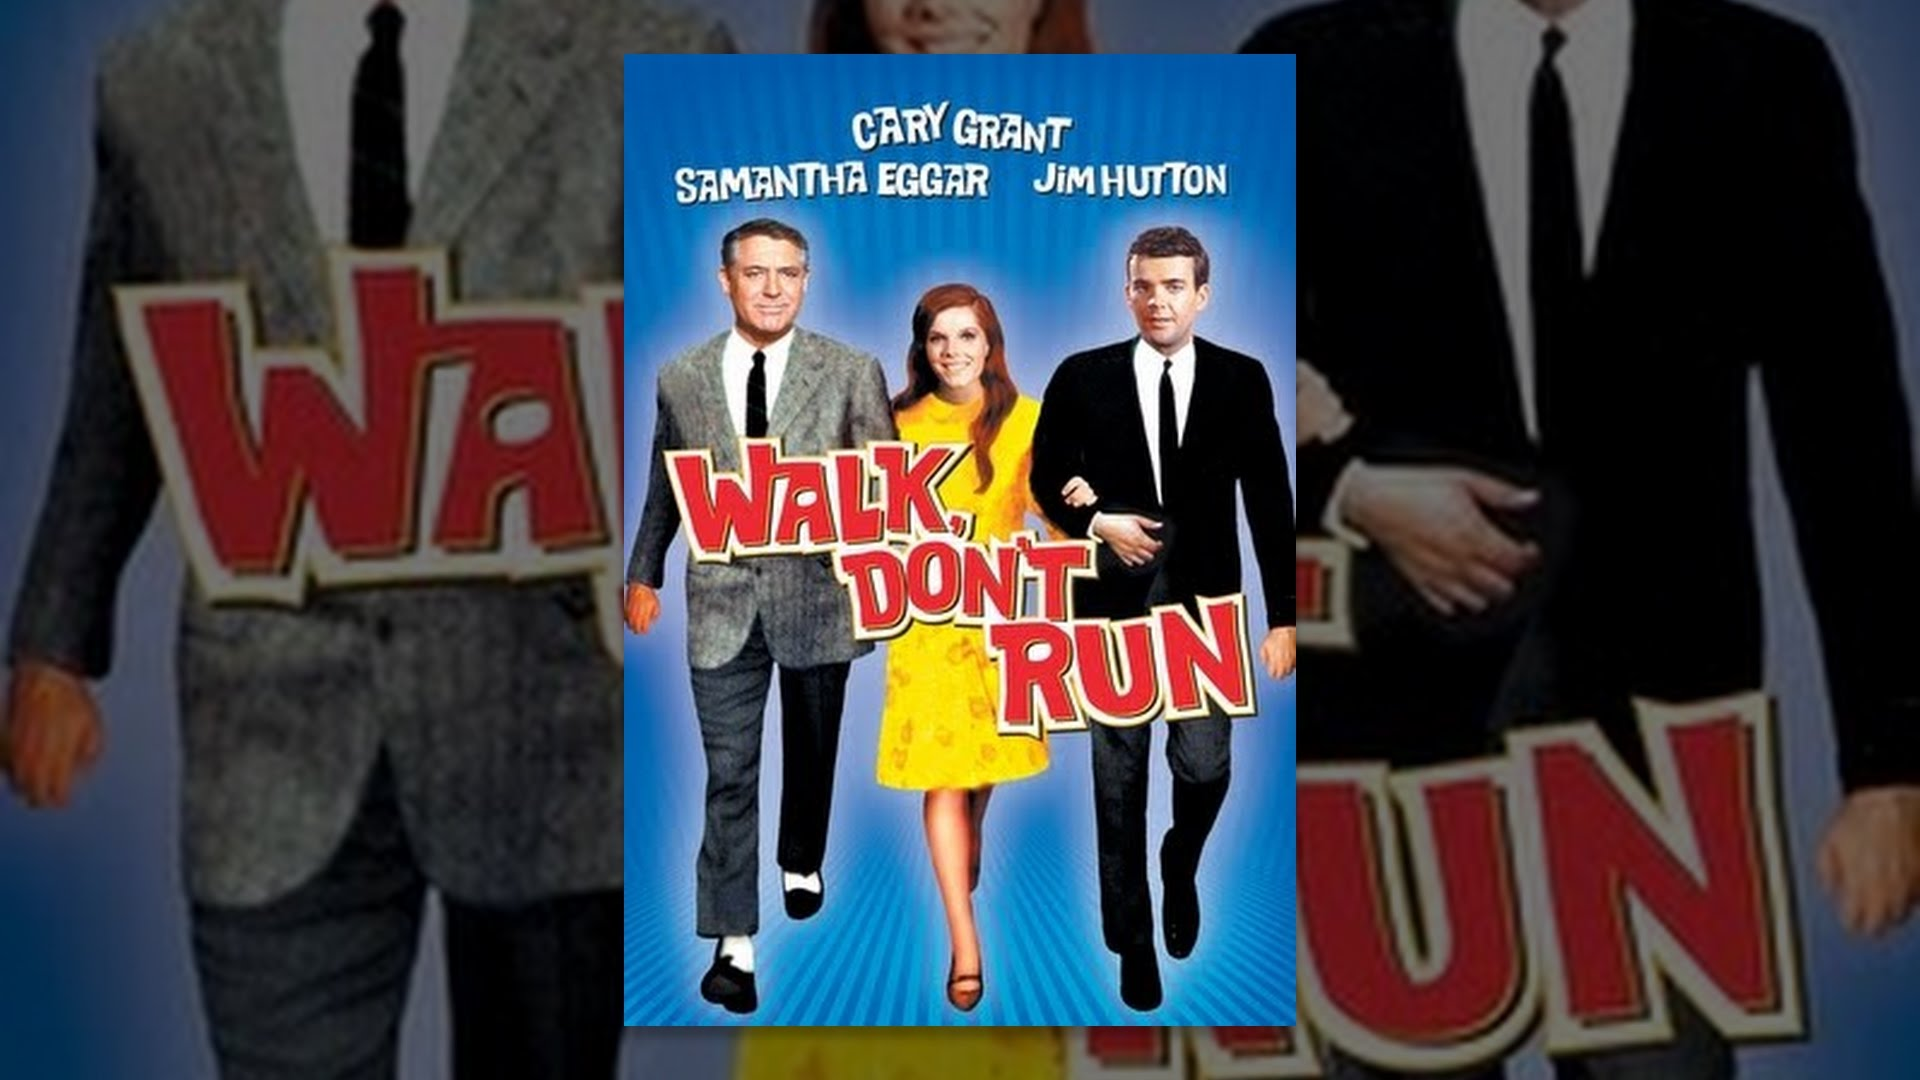 Cary Grant Walk Don't Run Walk Don't Run